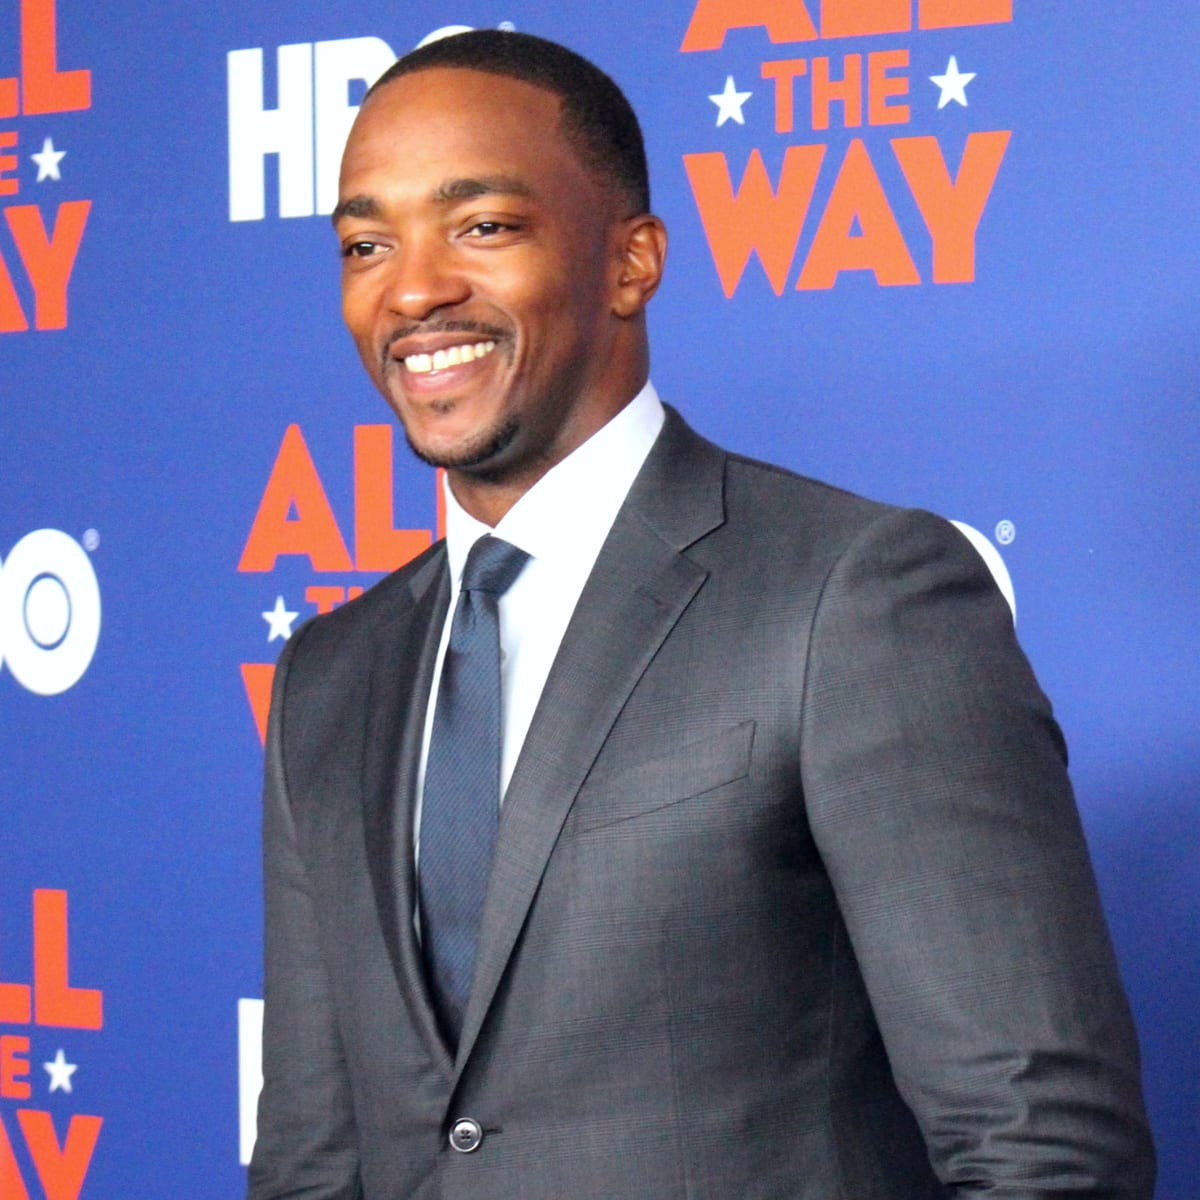 Austin premiere HBO film All the Way LBJ red carpet Anthony Mackie